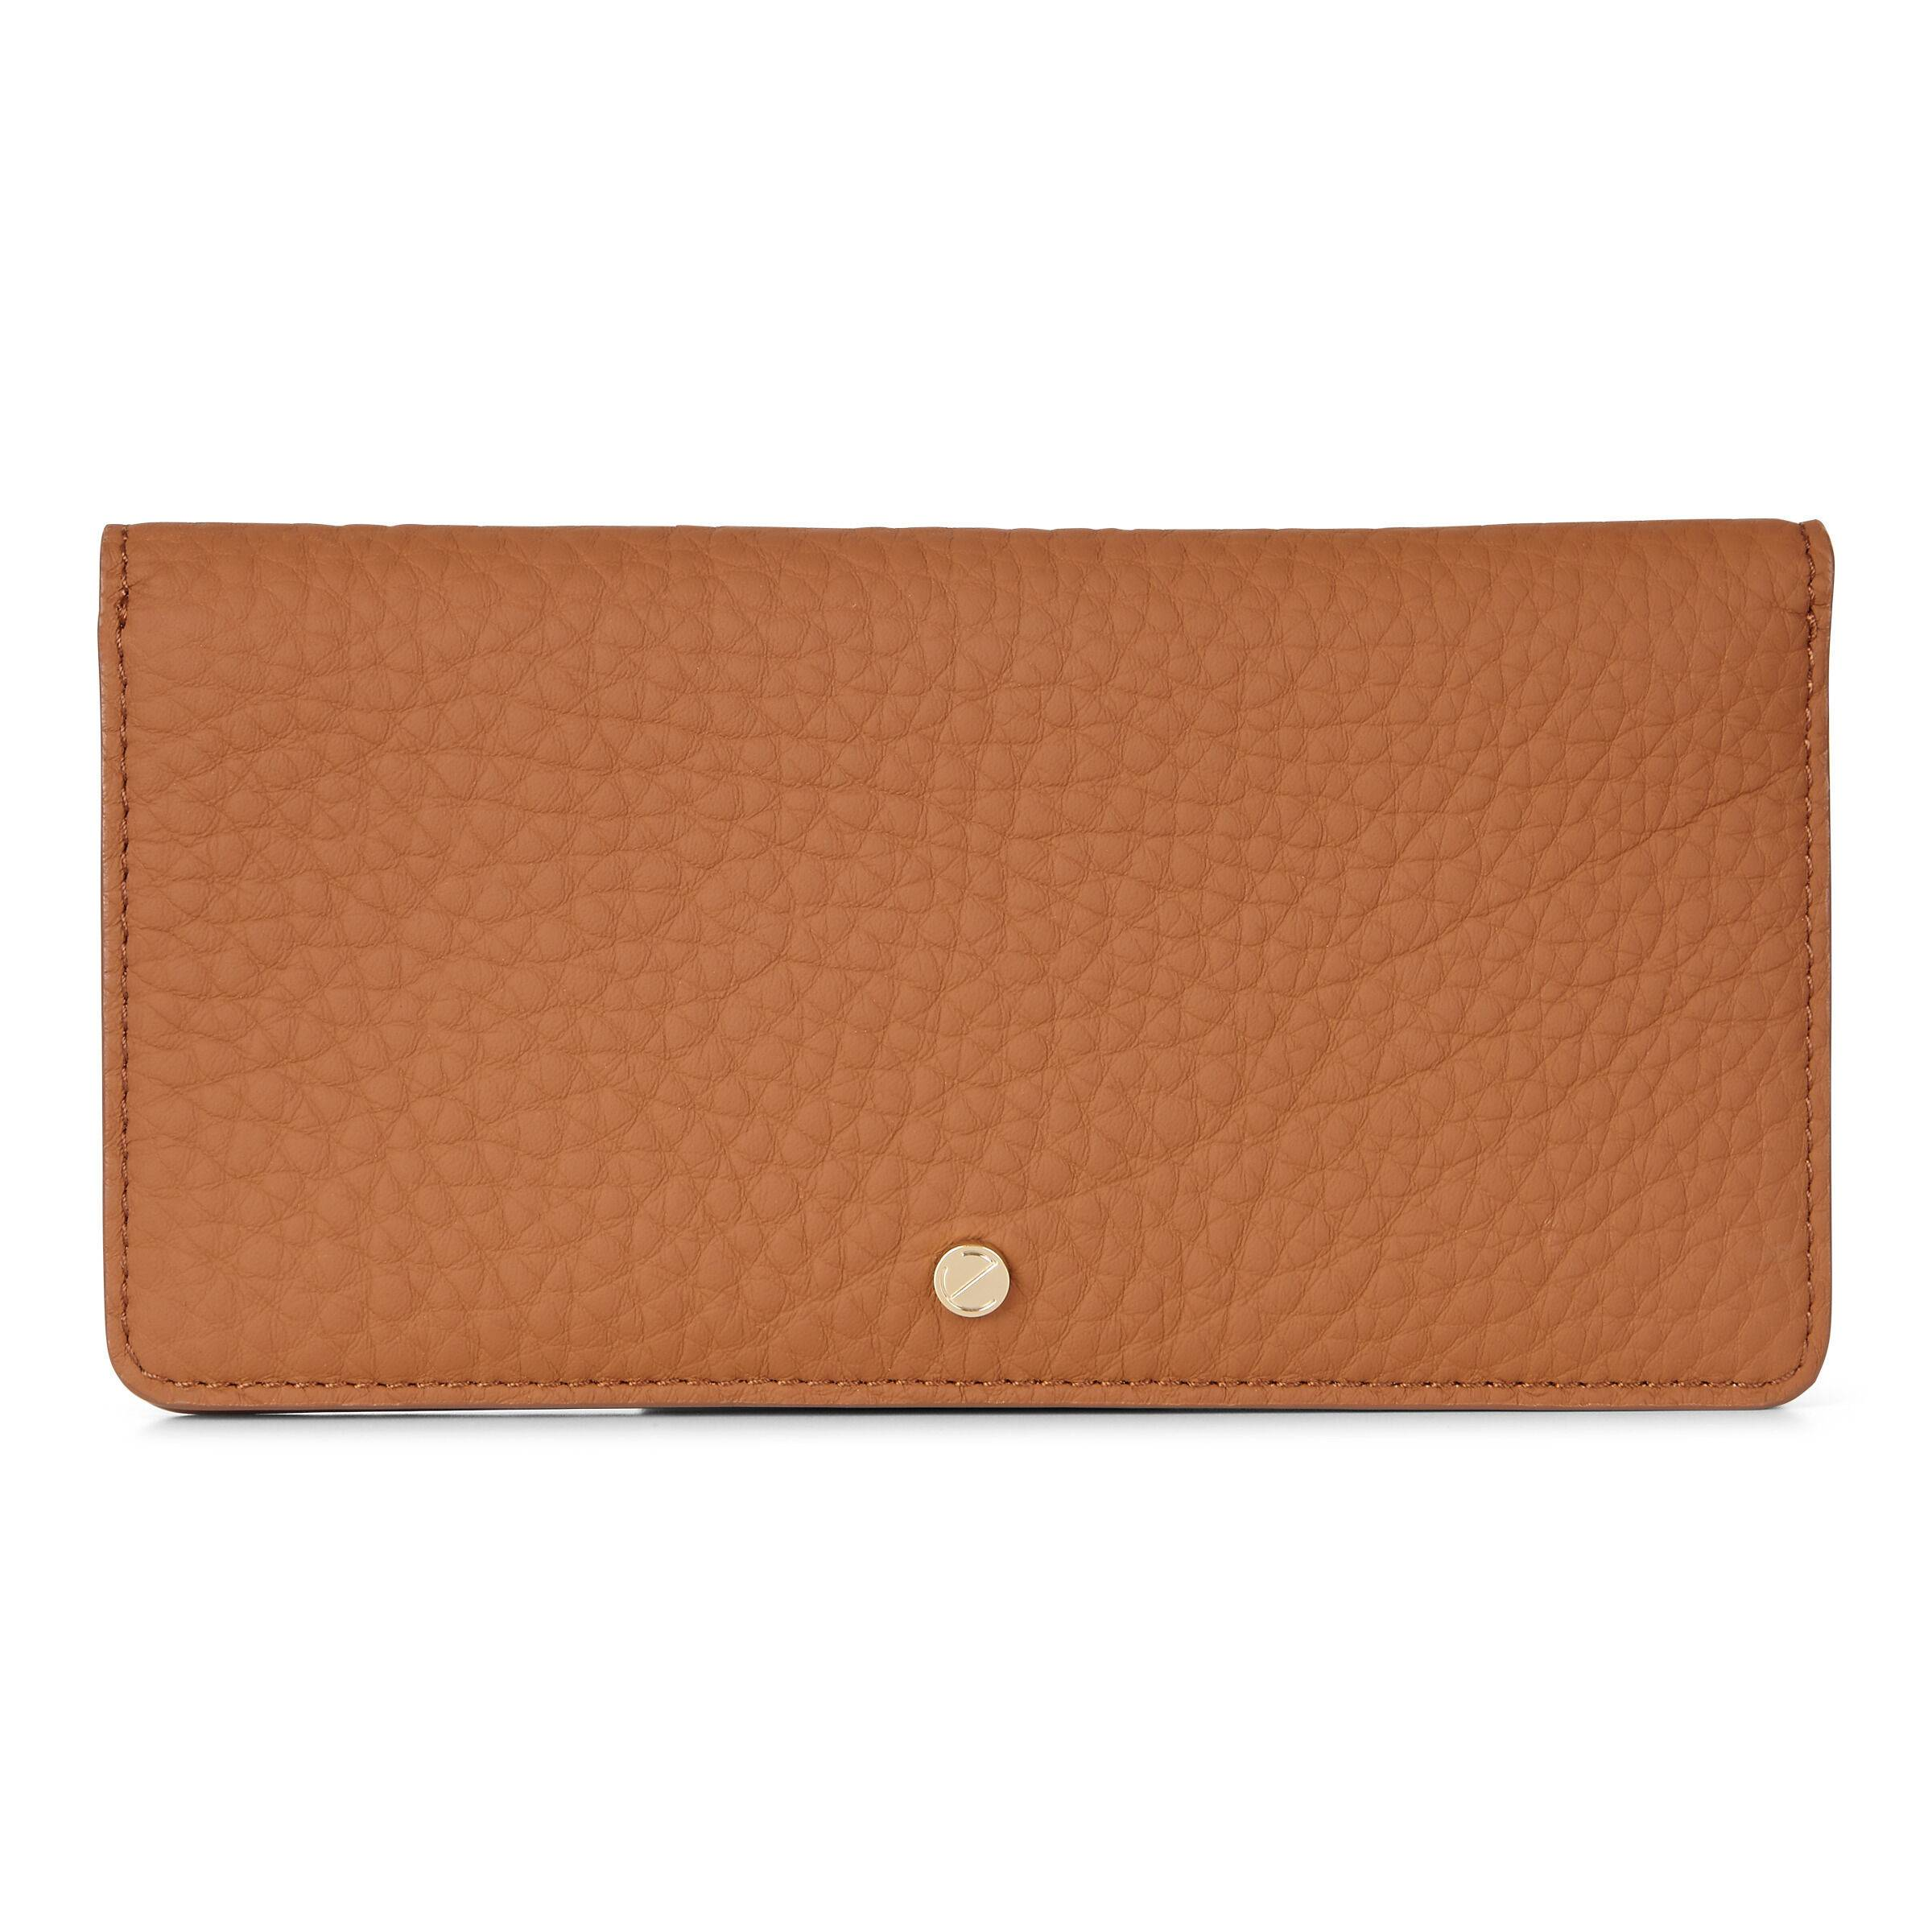 ECCO Jilin Tandem Large Wallet: One Size - Amber